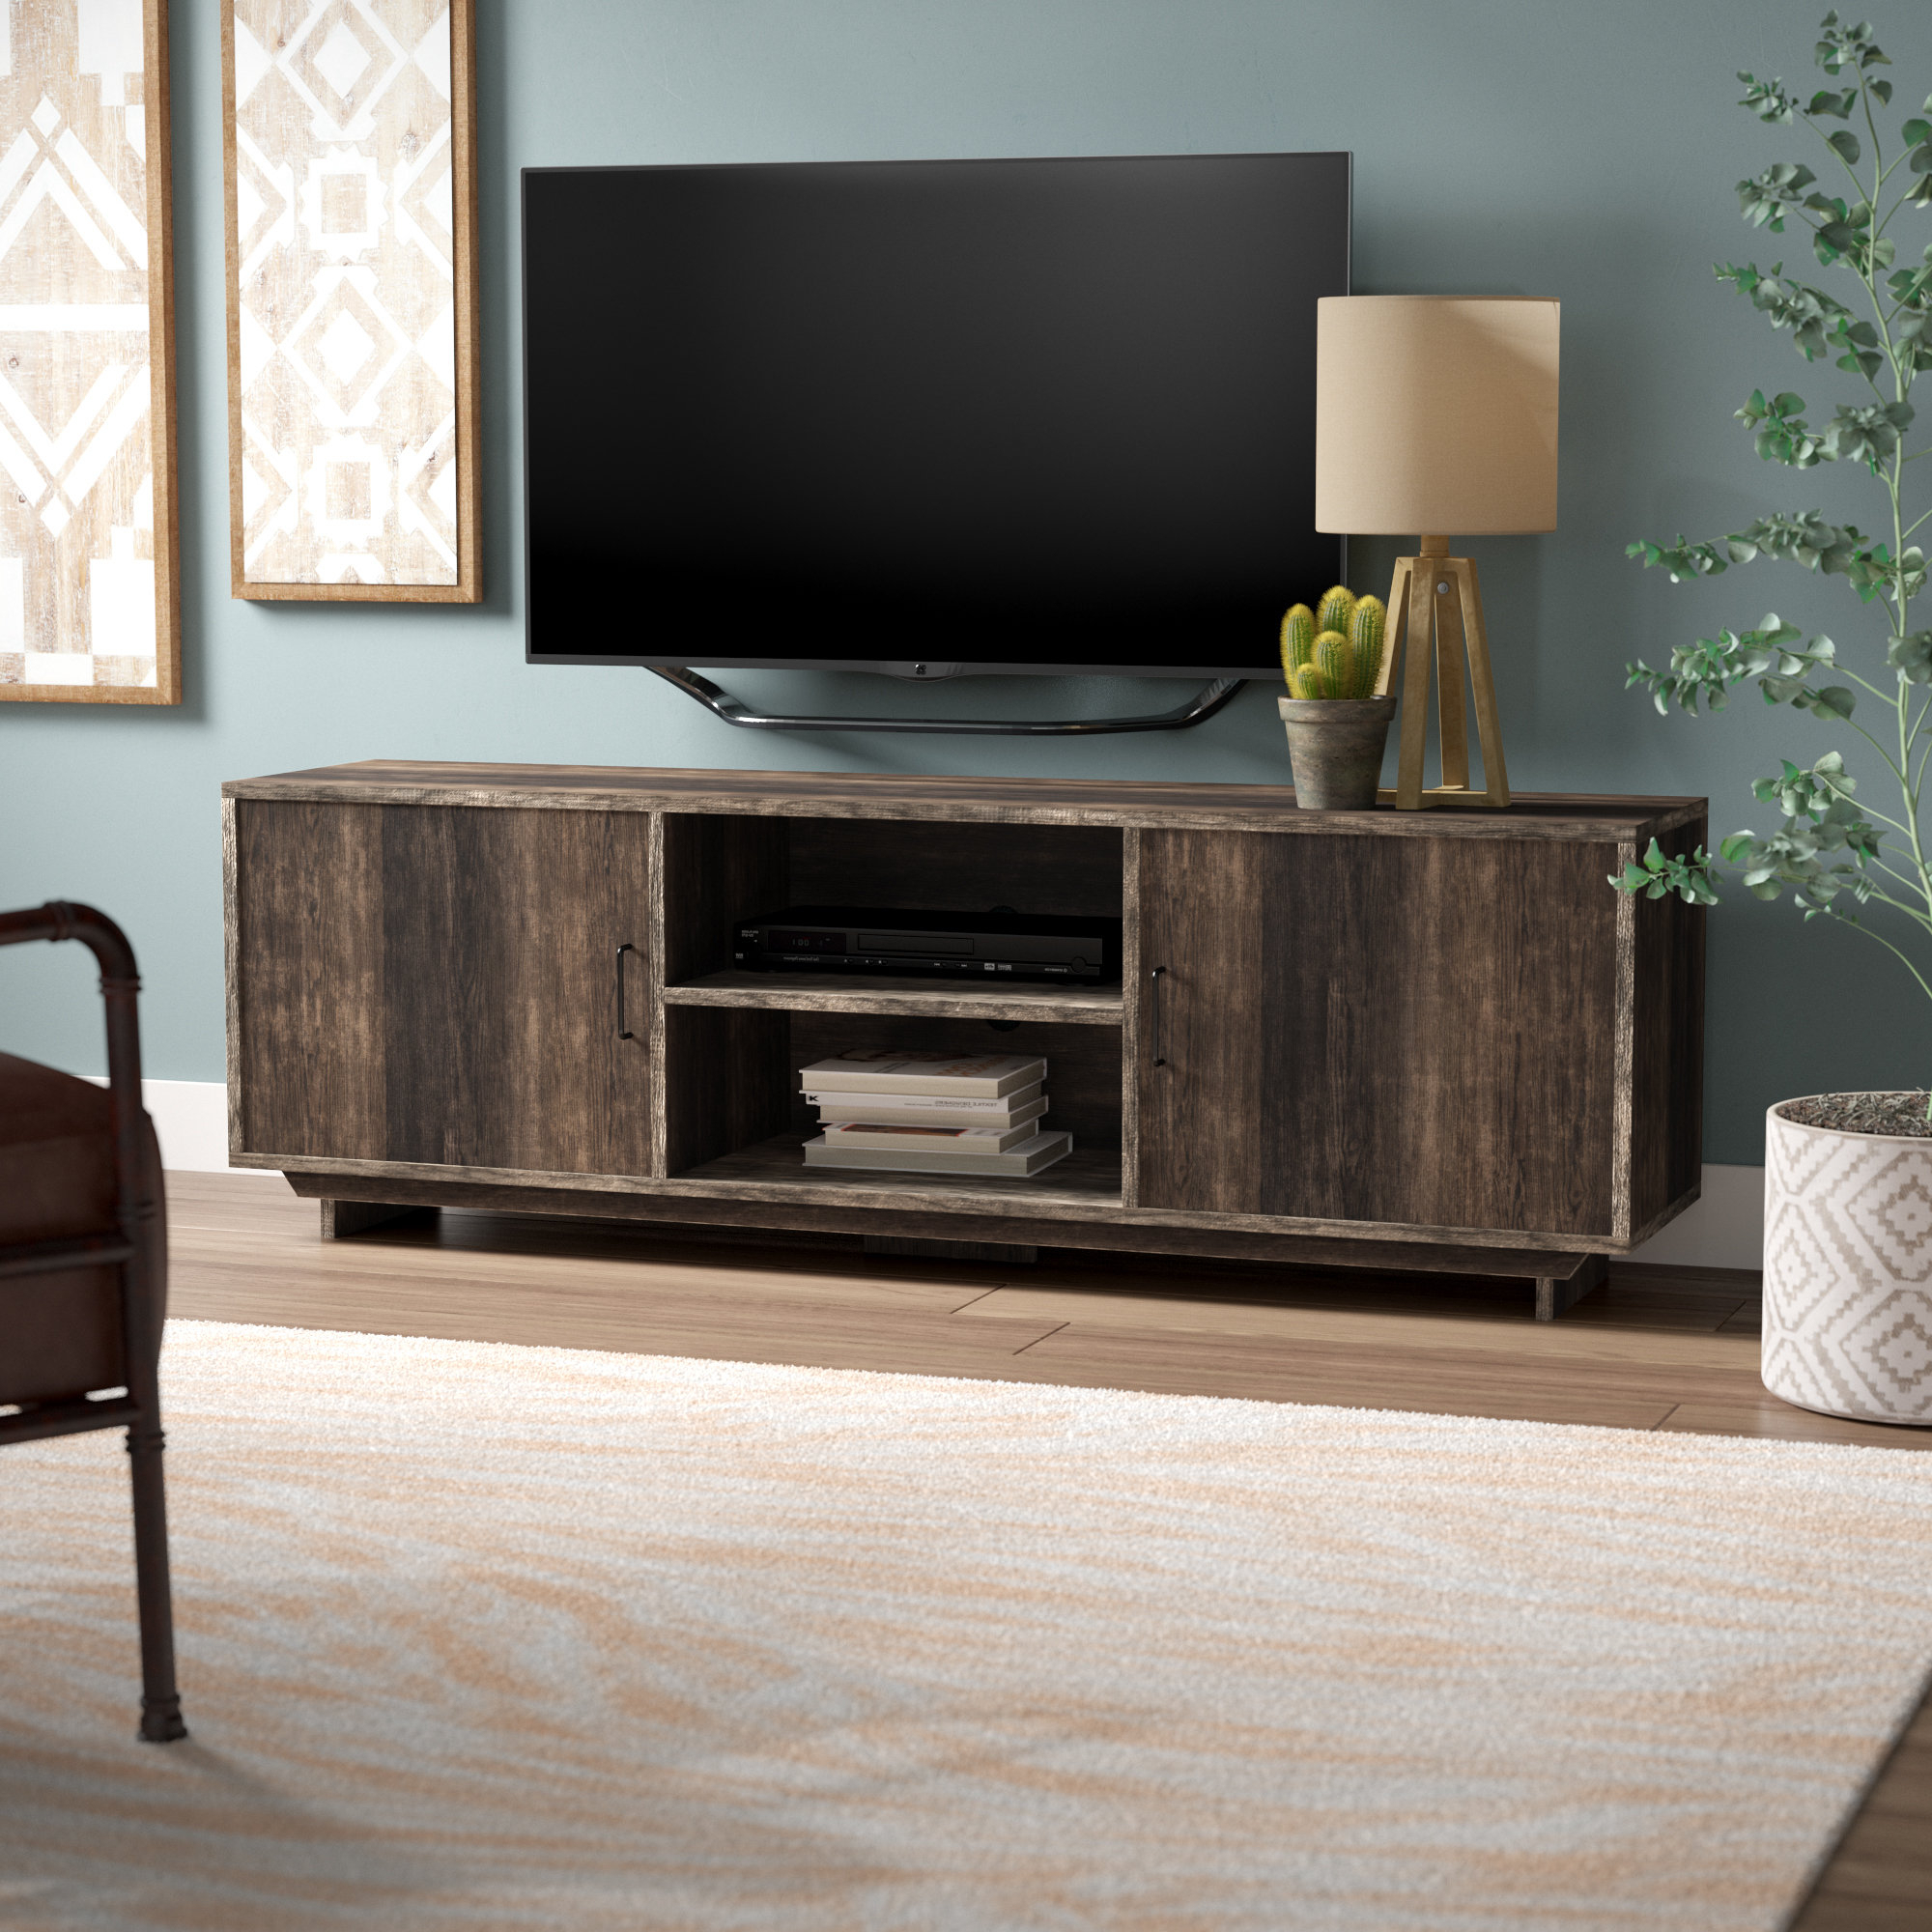 Casey Umber 54 Inch Tv Stands Pertaining To Widely Used Low (Up To 23 Inches) Tv Stands (View 11 of 20)